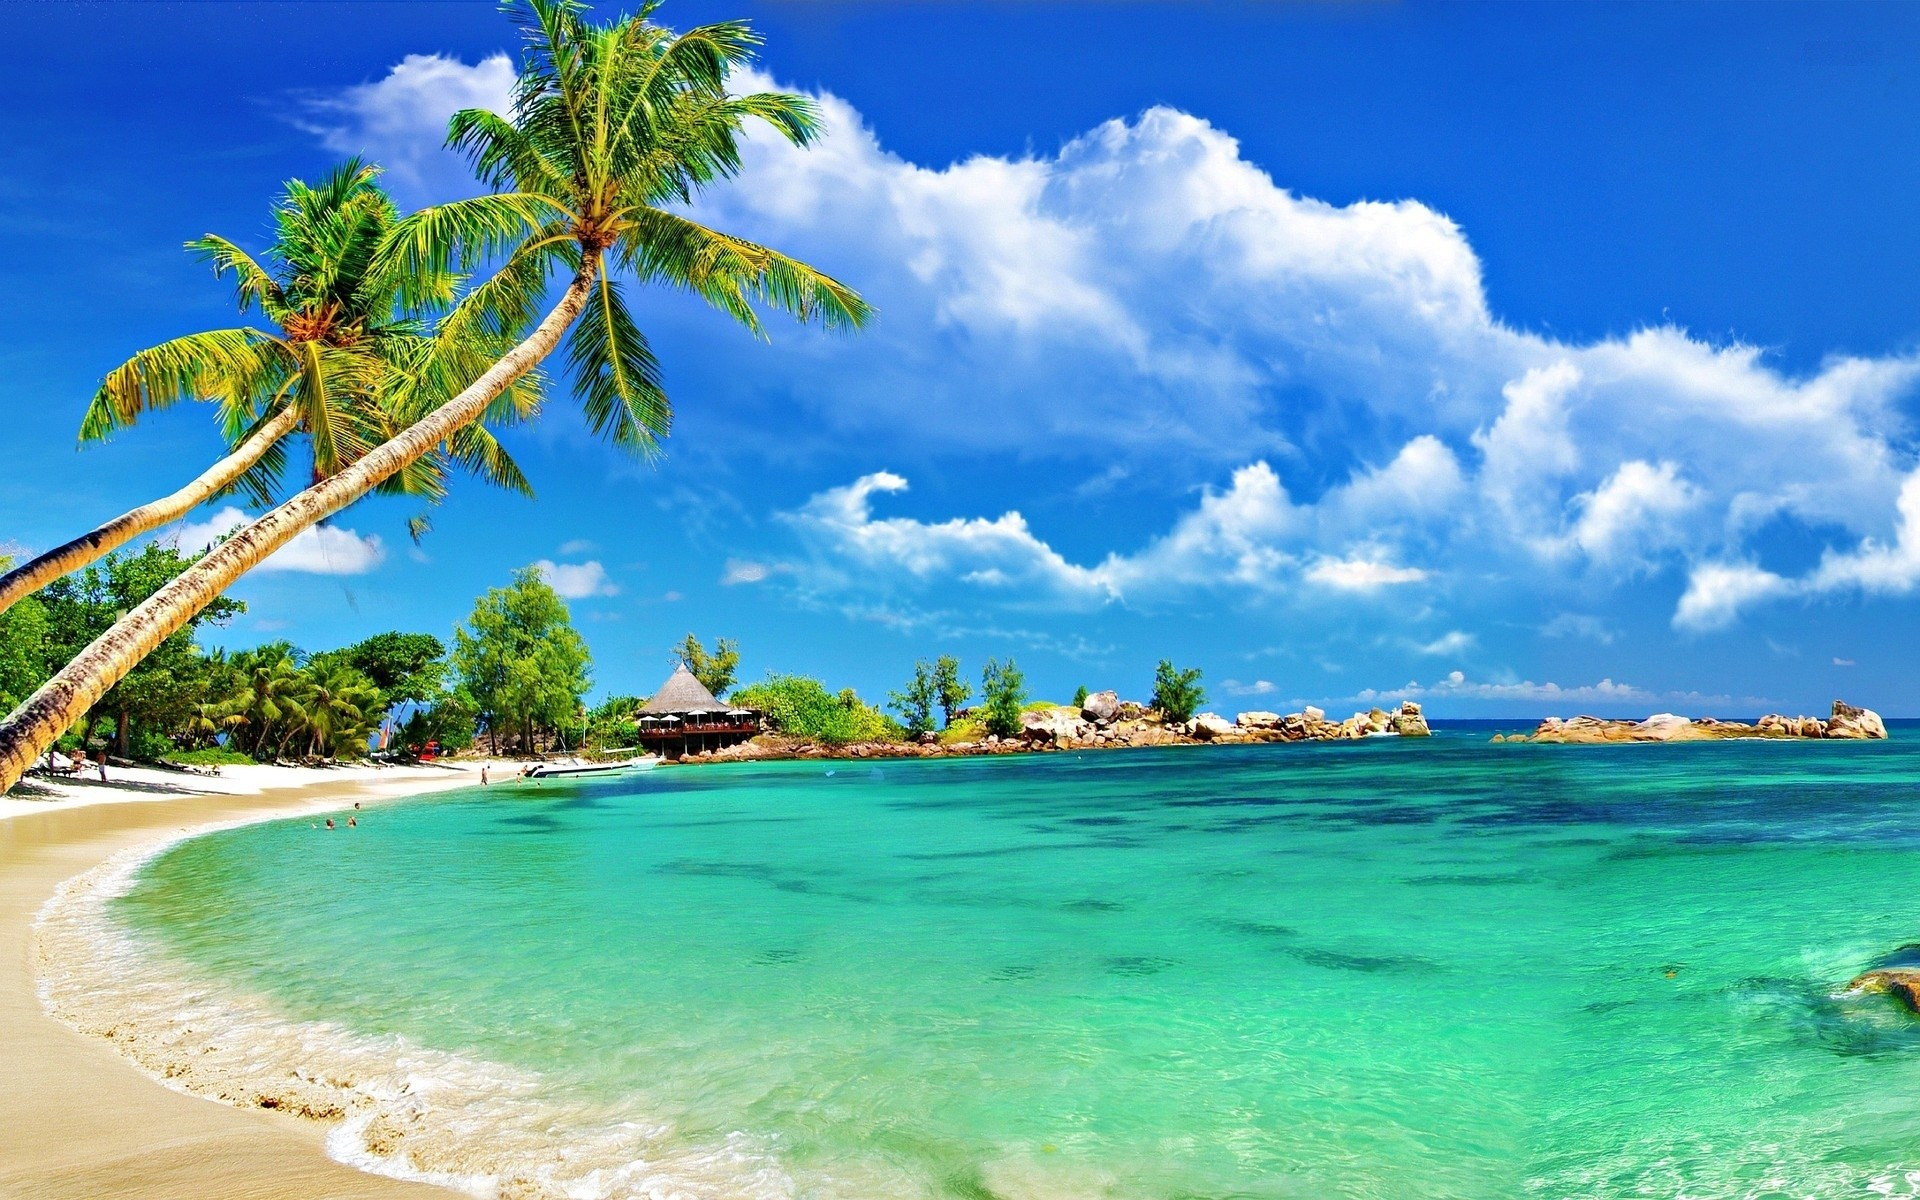 1920x1200 tropical beach hd image tropical beach hd wallpapers tropical beach .